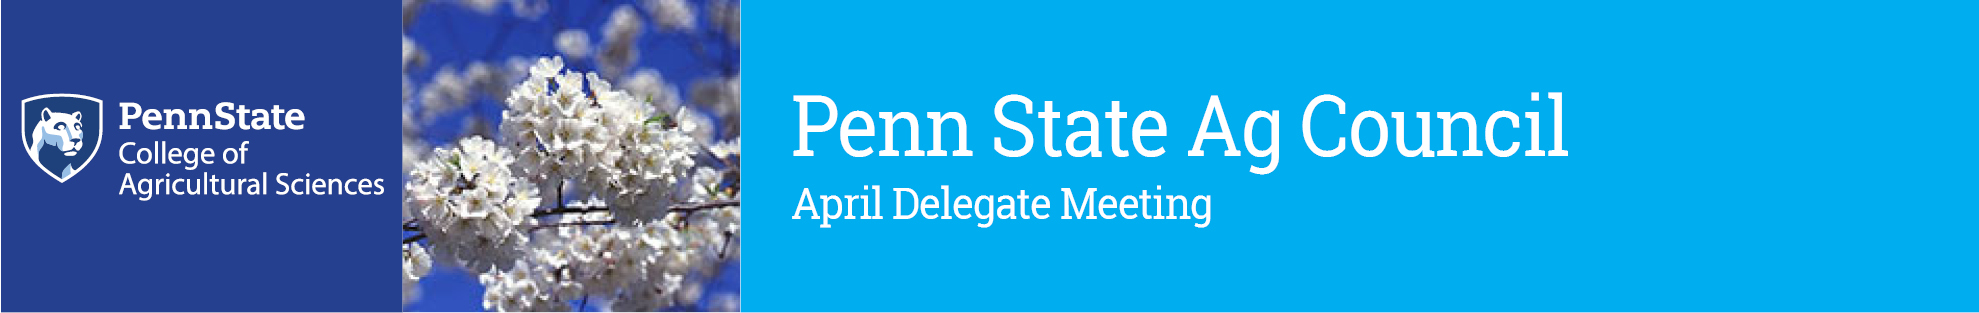 2017 Penn State Ag Council April Delegate Meeting